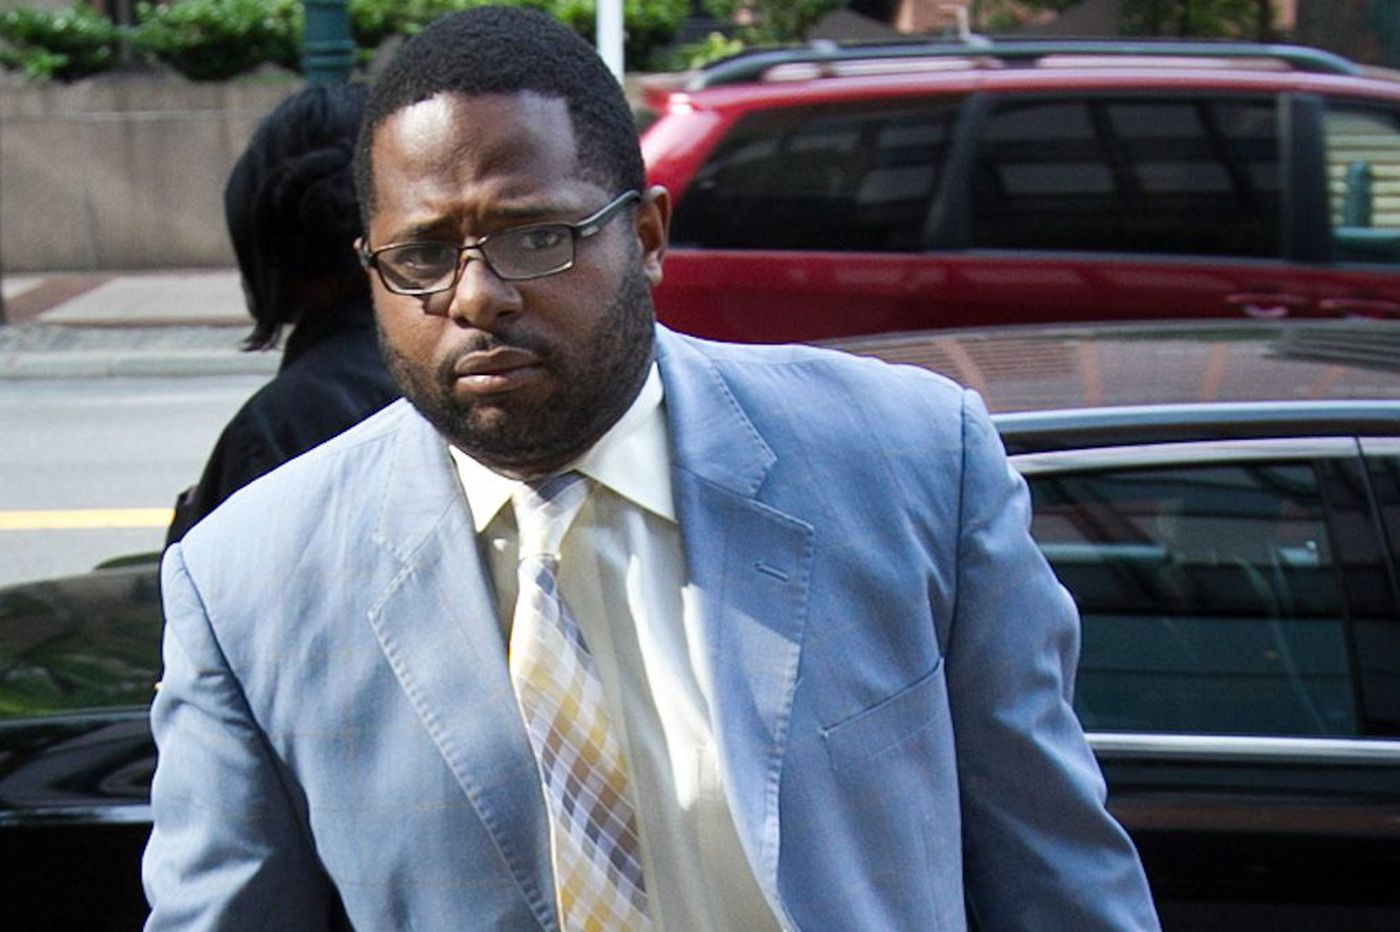 Former Philly Traffic Court judge - convicted of lying to feds - seeks 'fresh start' in Congress